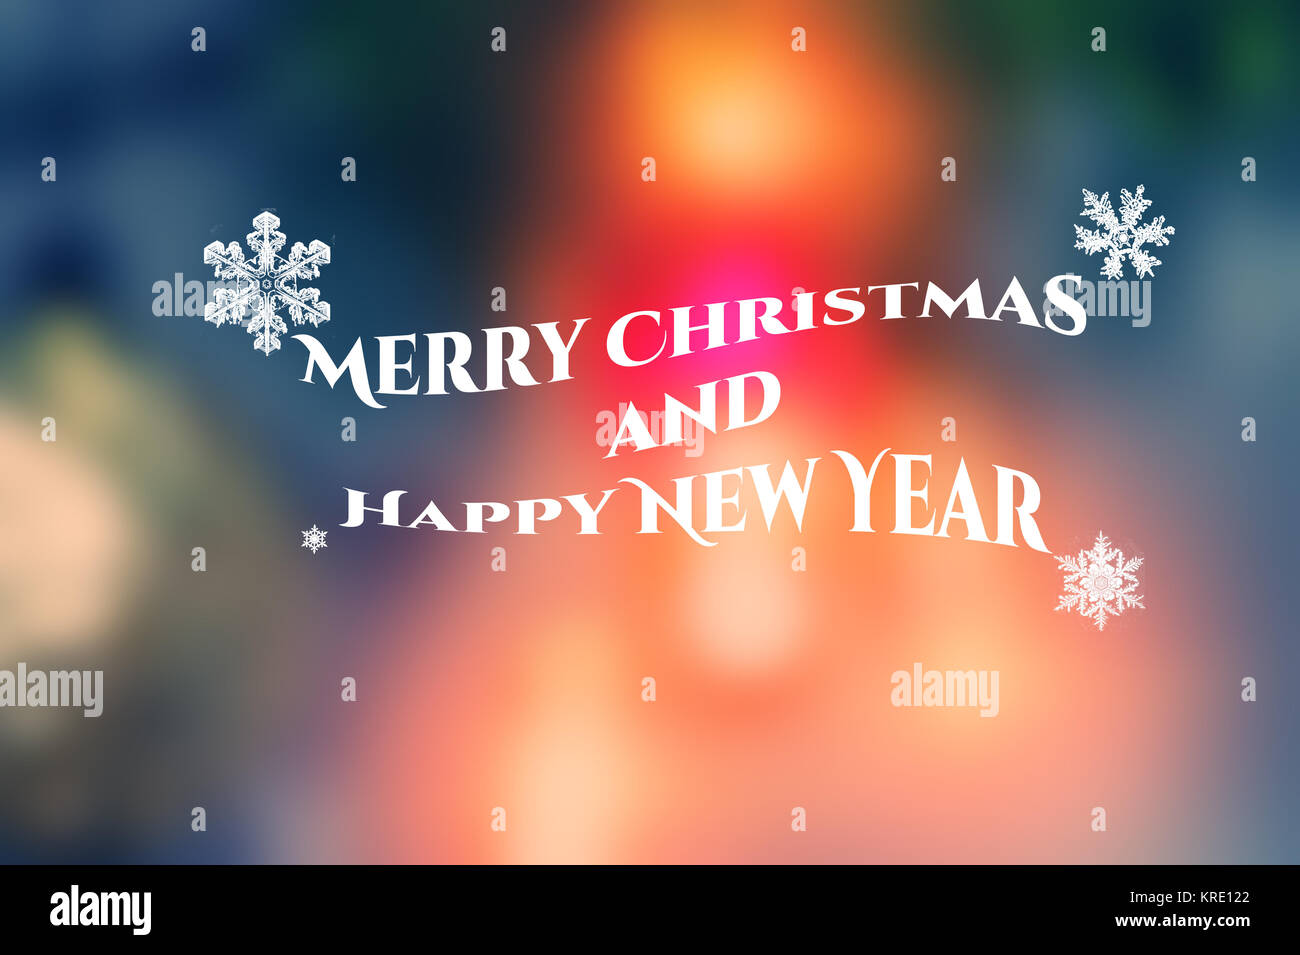 Elegant Merry Christmas And Happy New Year Card Design Greeting